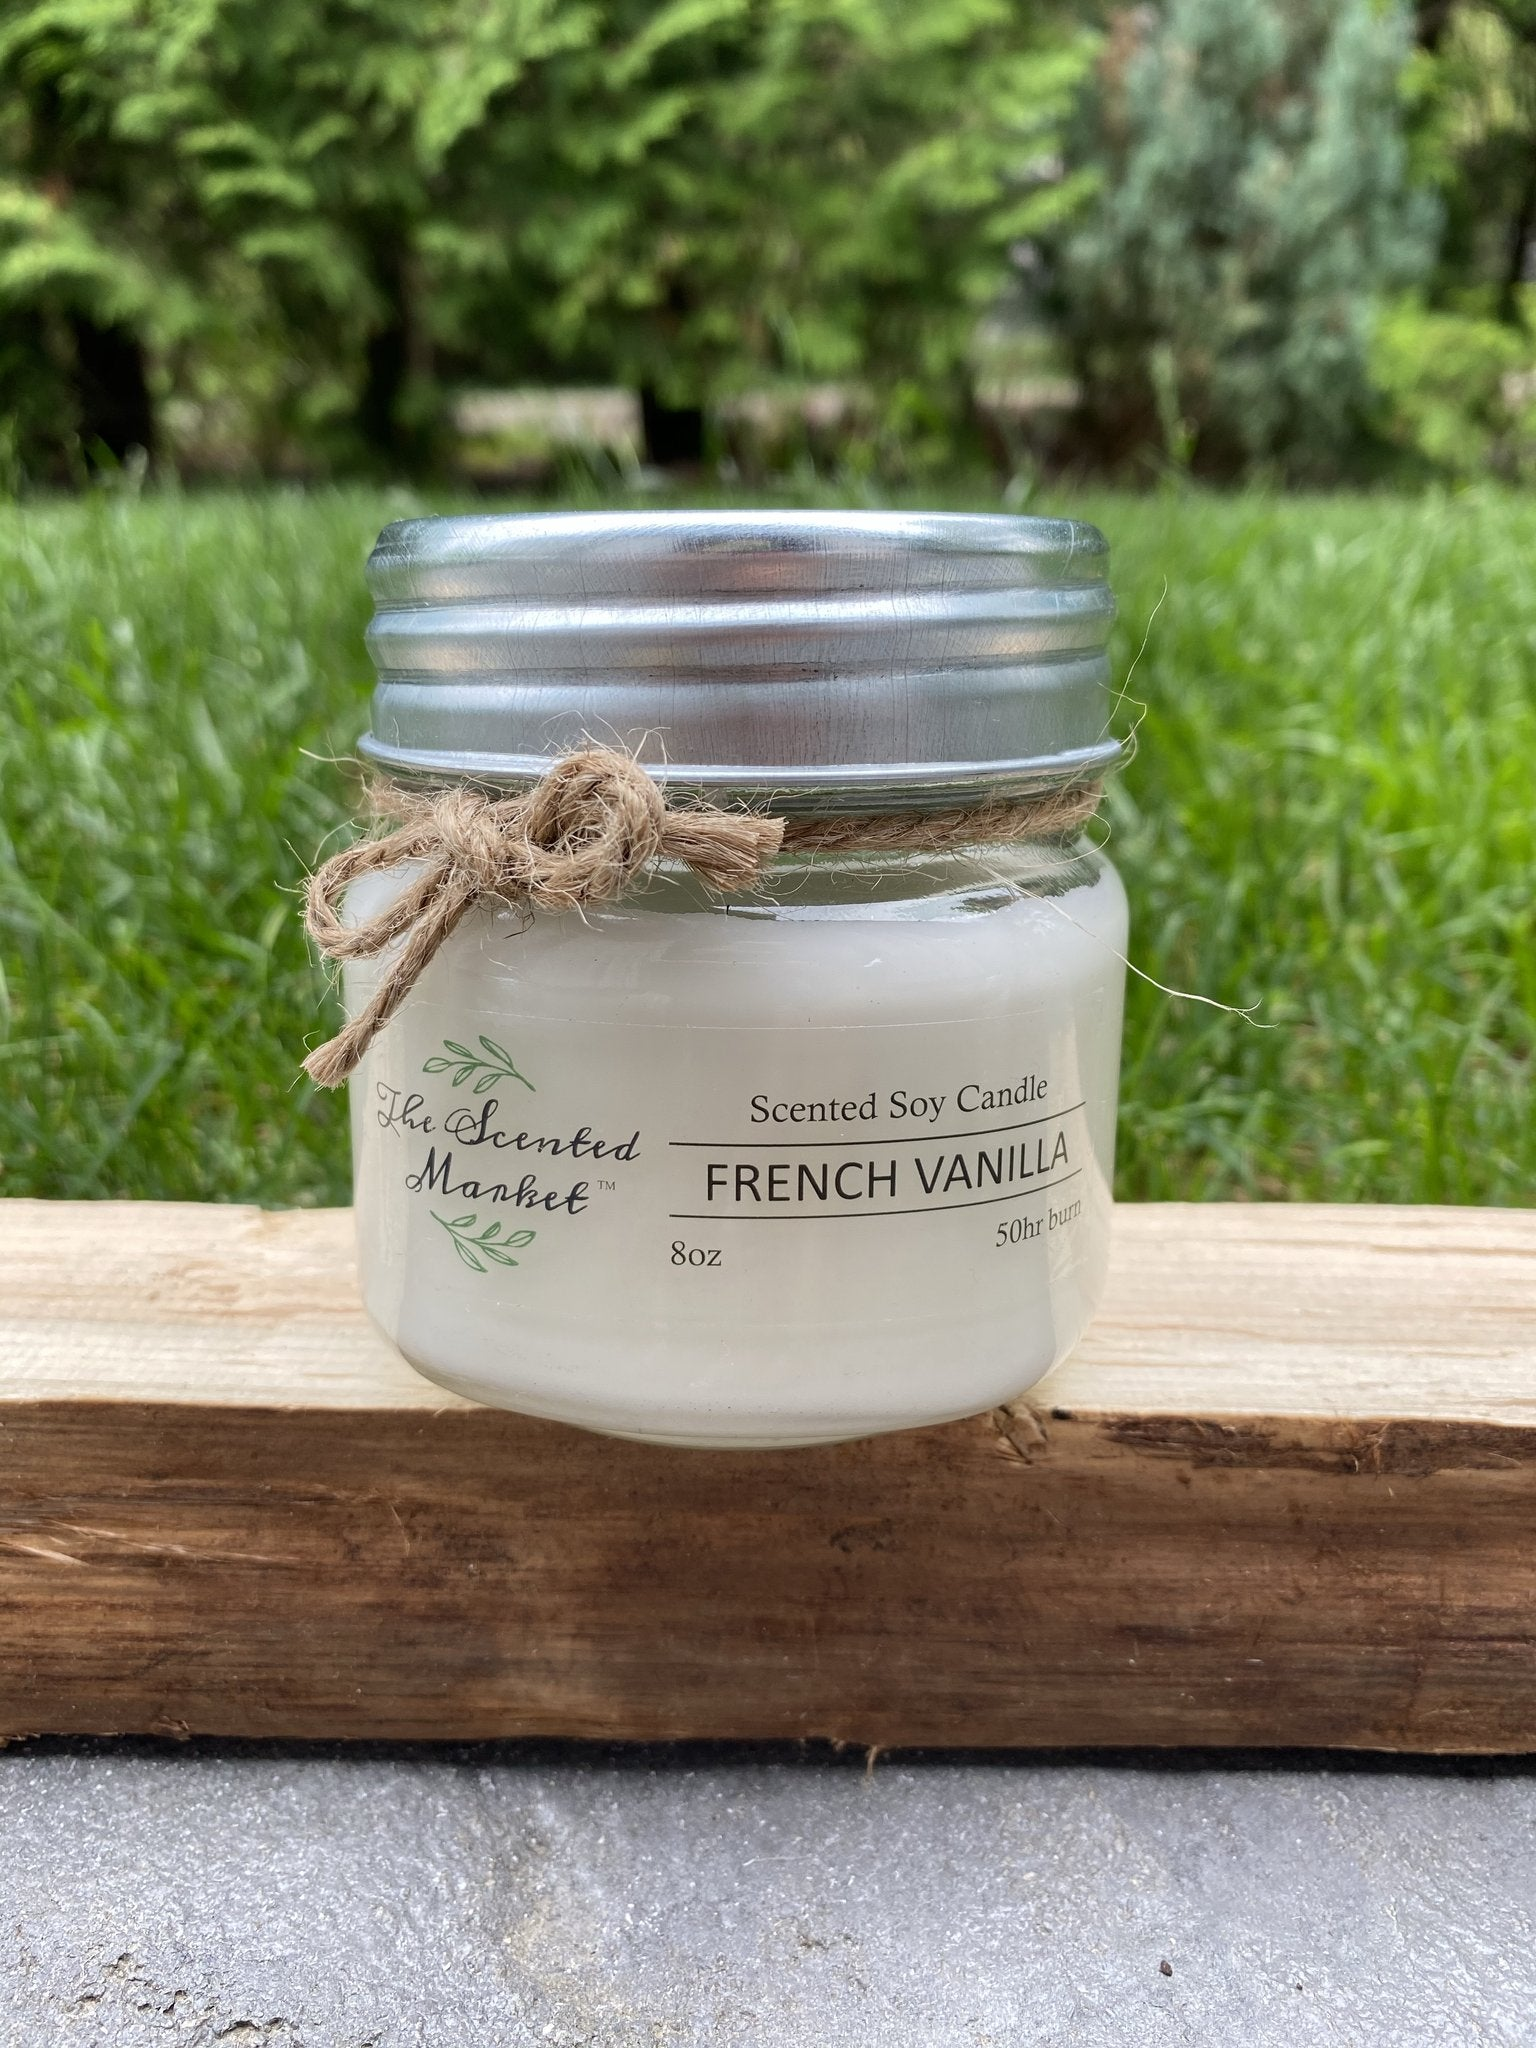 French Vanilla.  Soy wax candle 8oz